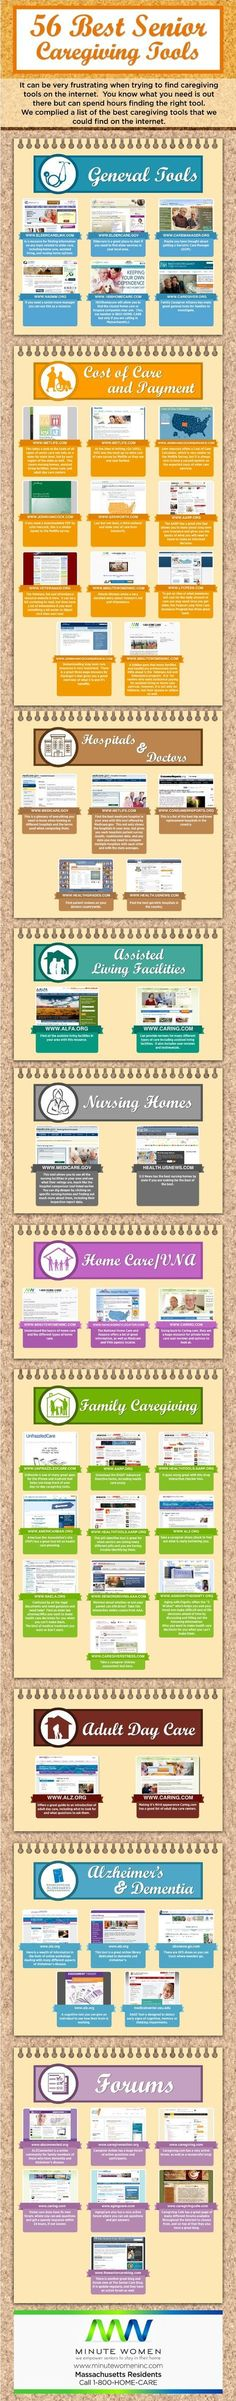 56 Best Senior #Caregiving Tools [Infographic] #elderlycareinspiration